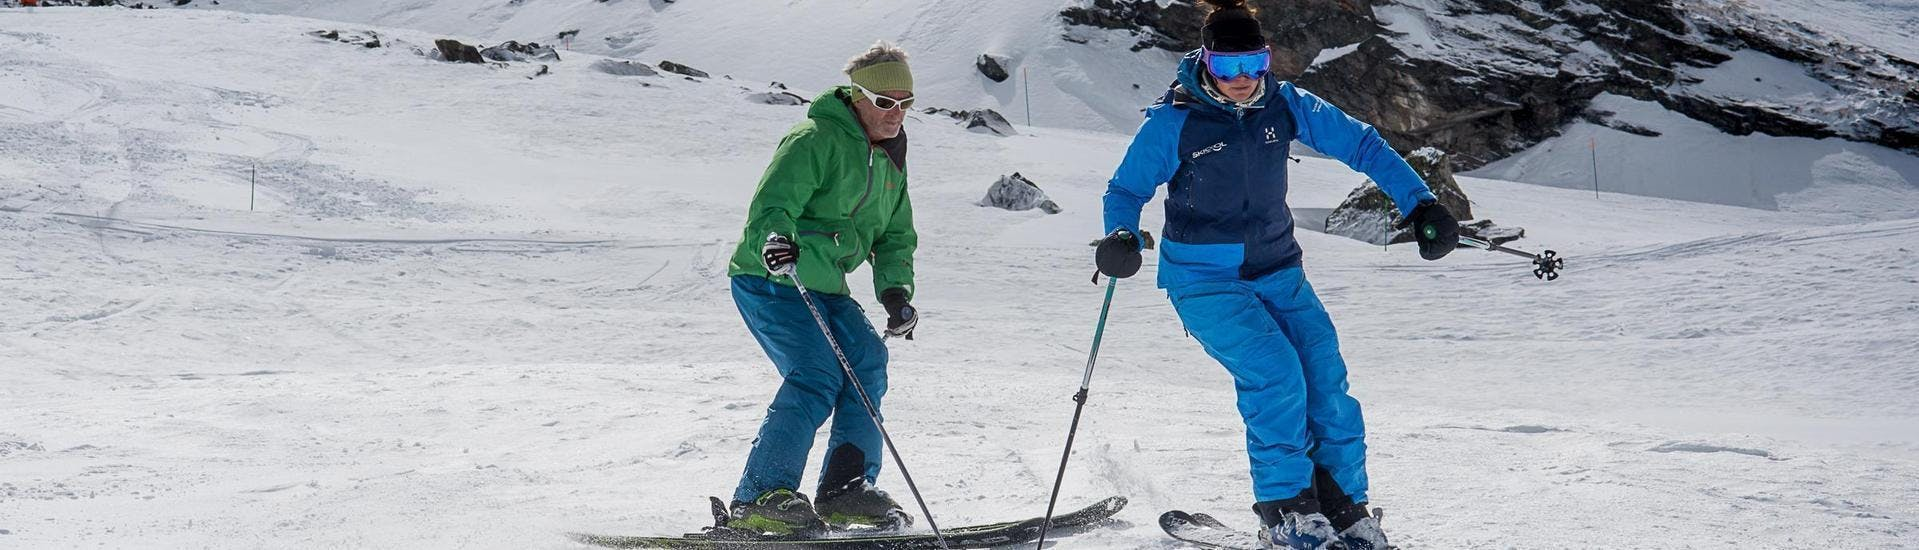 A skier is following his instructor from the ski school Ski Cool down the slope in the ski resort of Val Thorens during his Ski Lessons for Teens & Adults - Morning - 1st Timer.